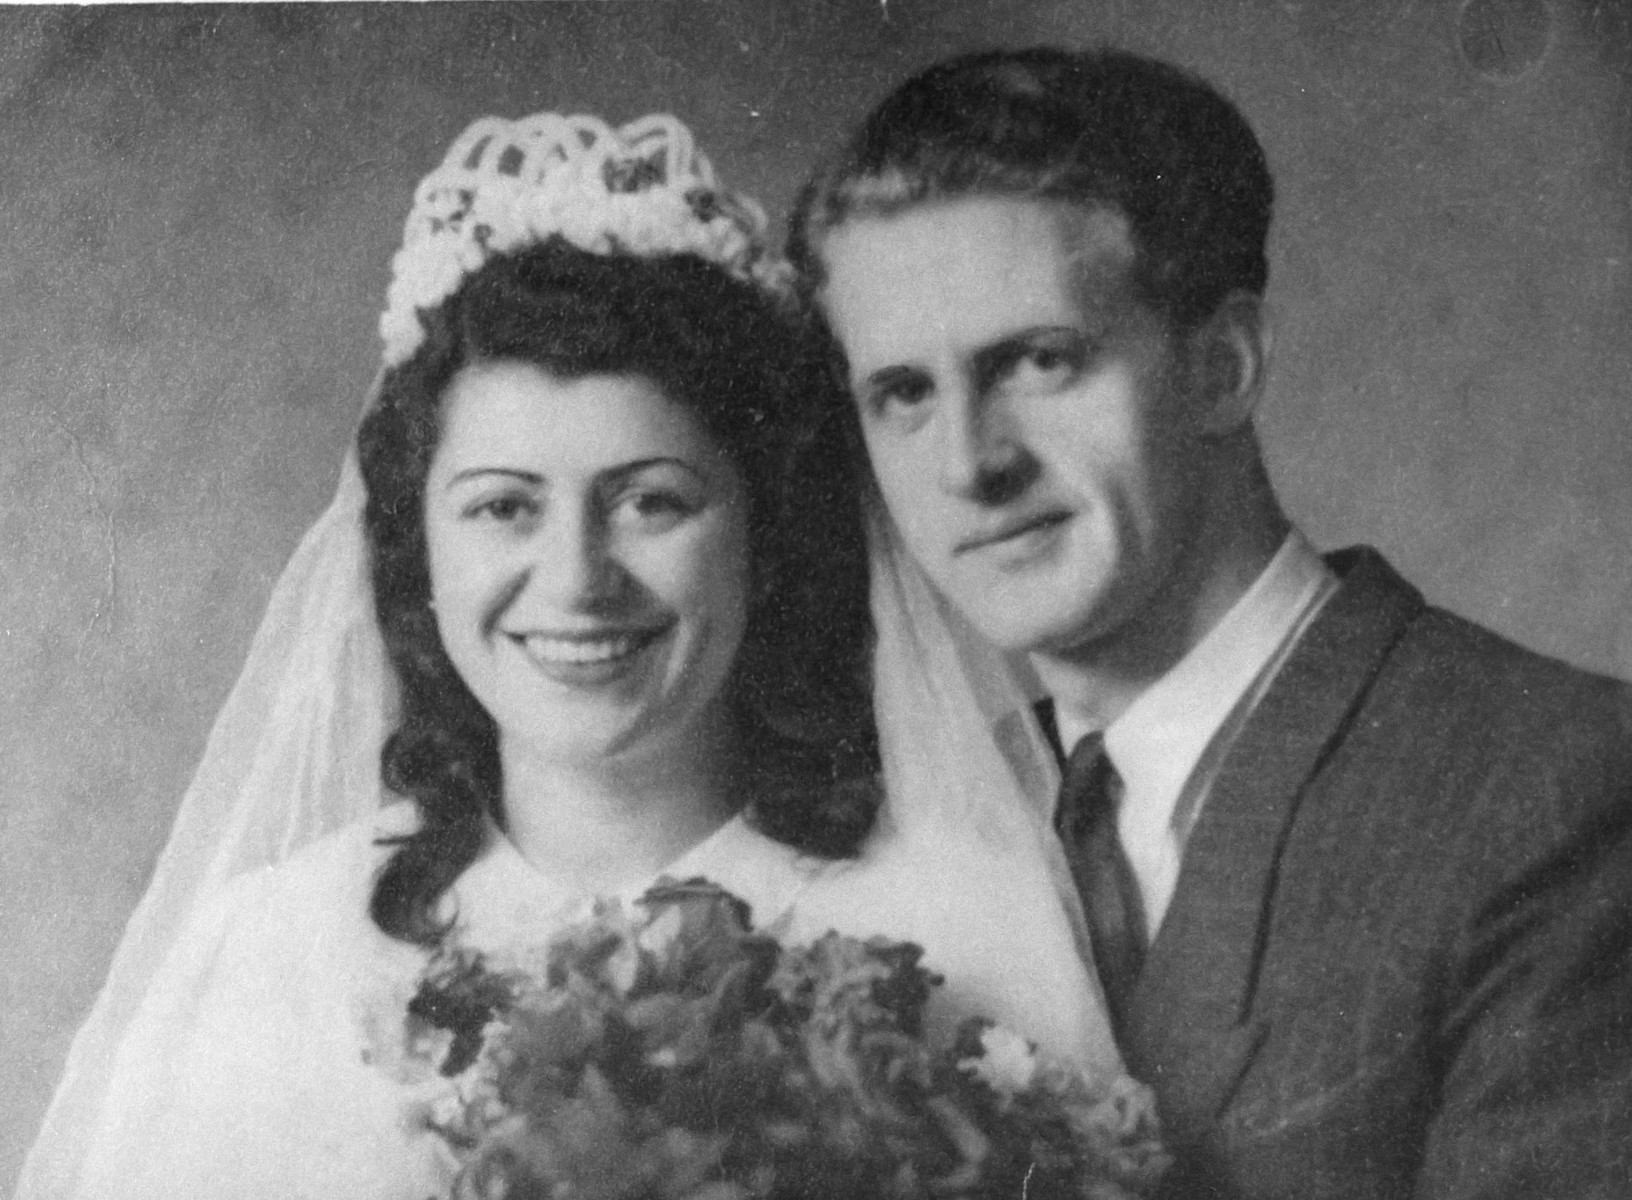 Wedding portrait of Aba Weinstein and Frida Szmulowicz.